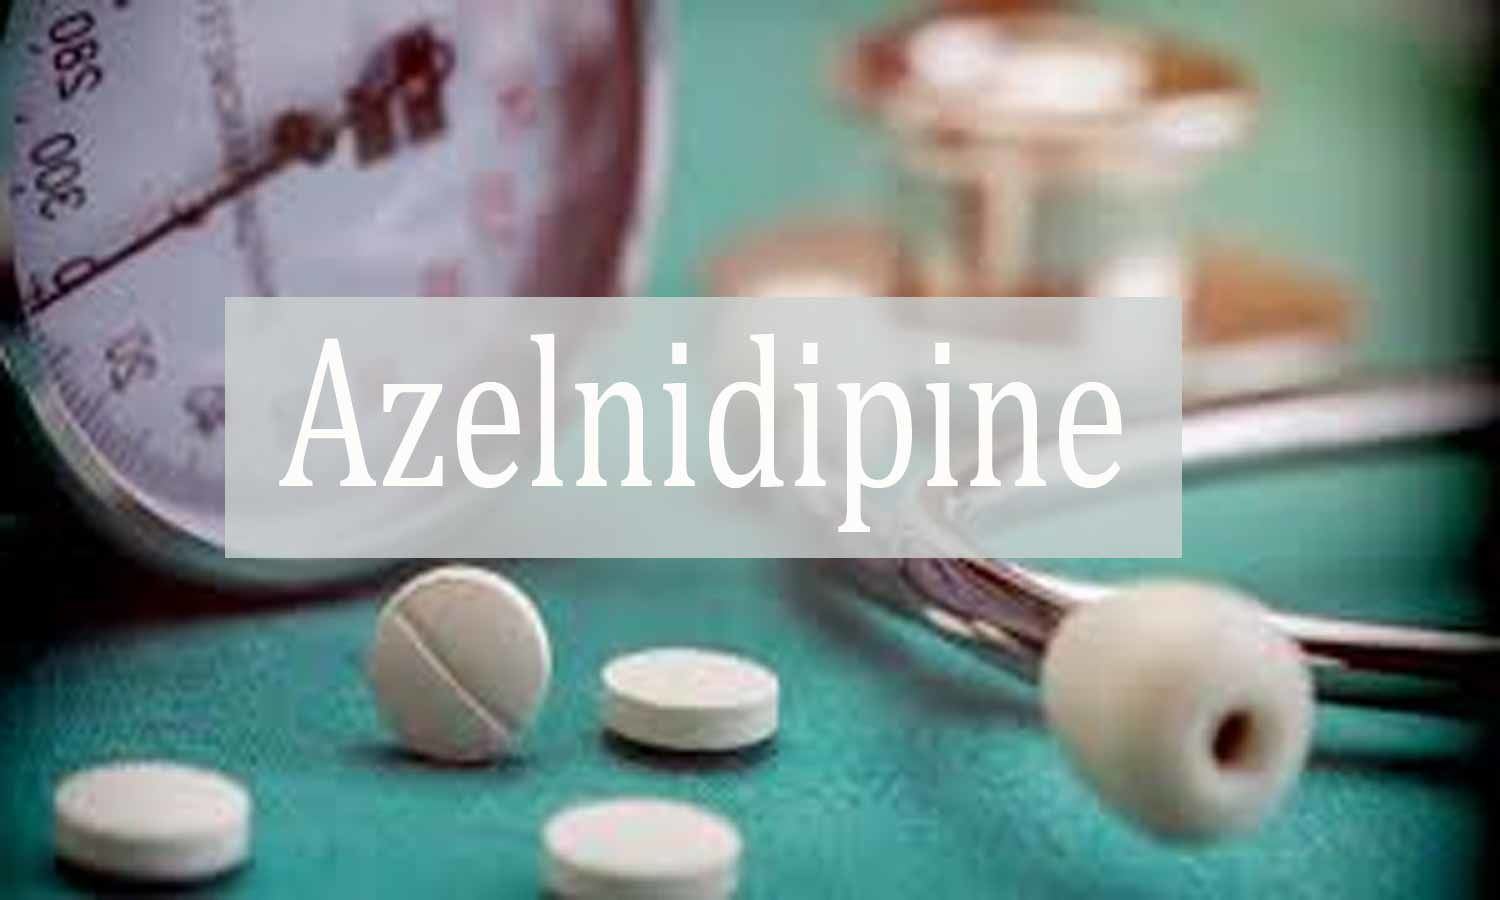 JB Chemicals brings BP Lowering Drug, Azelnidipine (DHP CCB) to Indian market under brand name Azovas